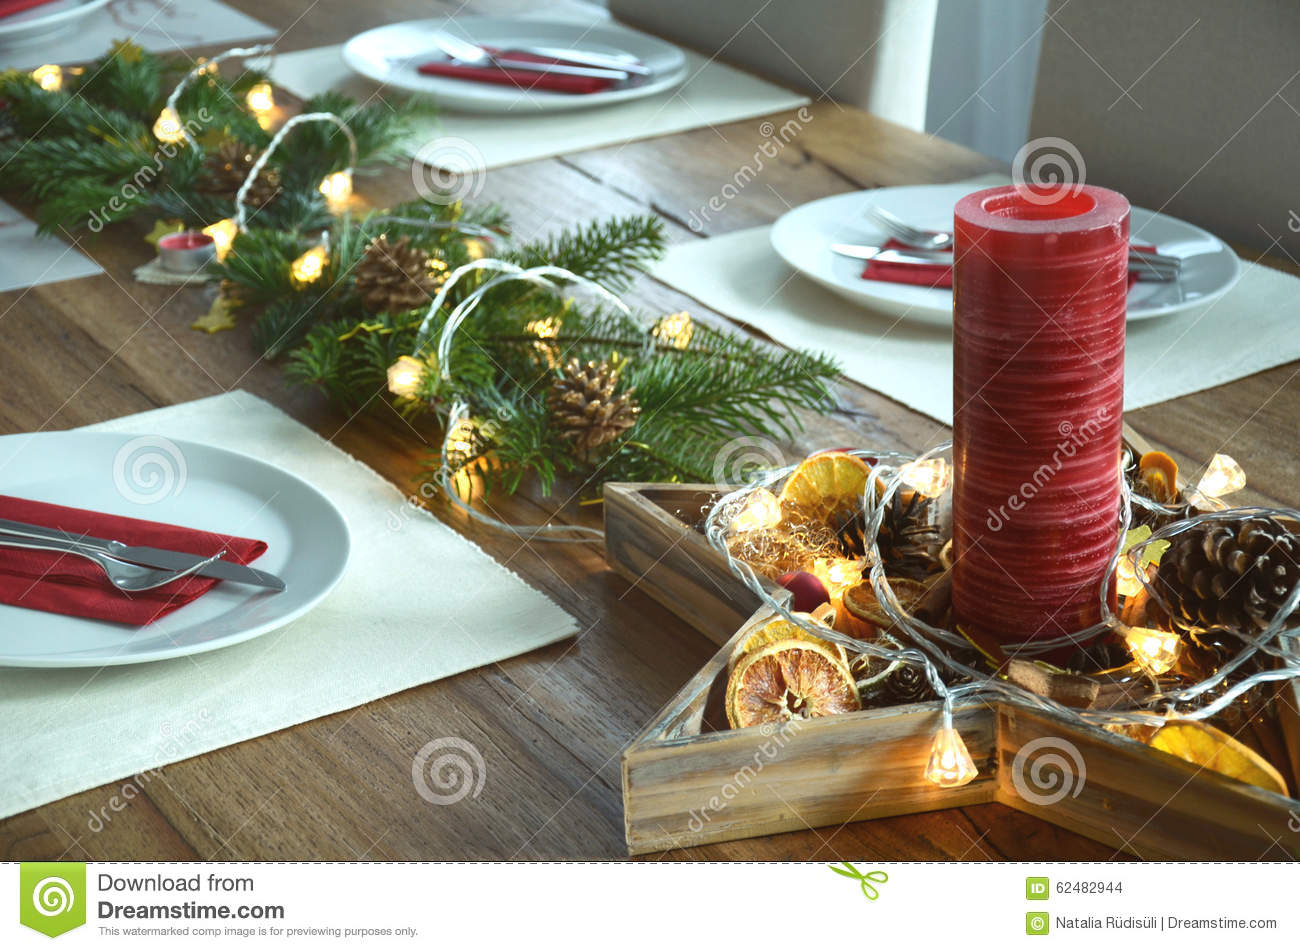 Christmas Table Decoraton With A Red Candle Fir Tree Twigs And